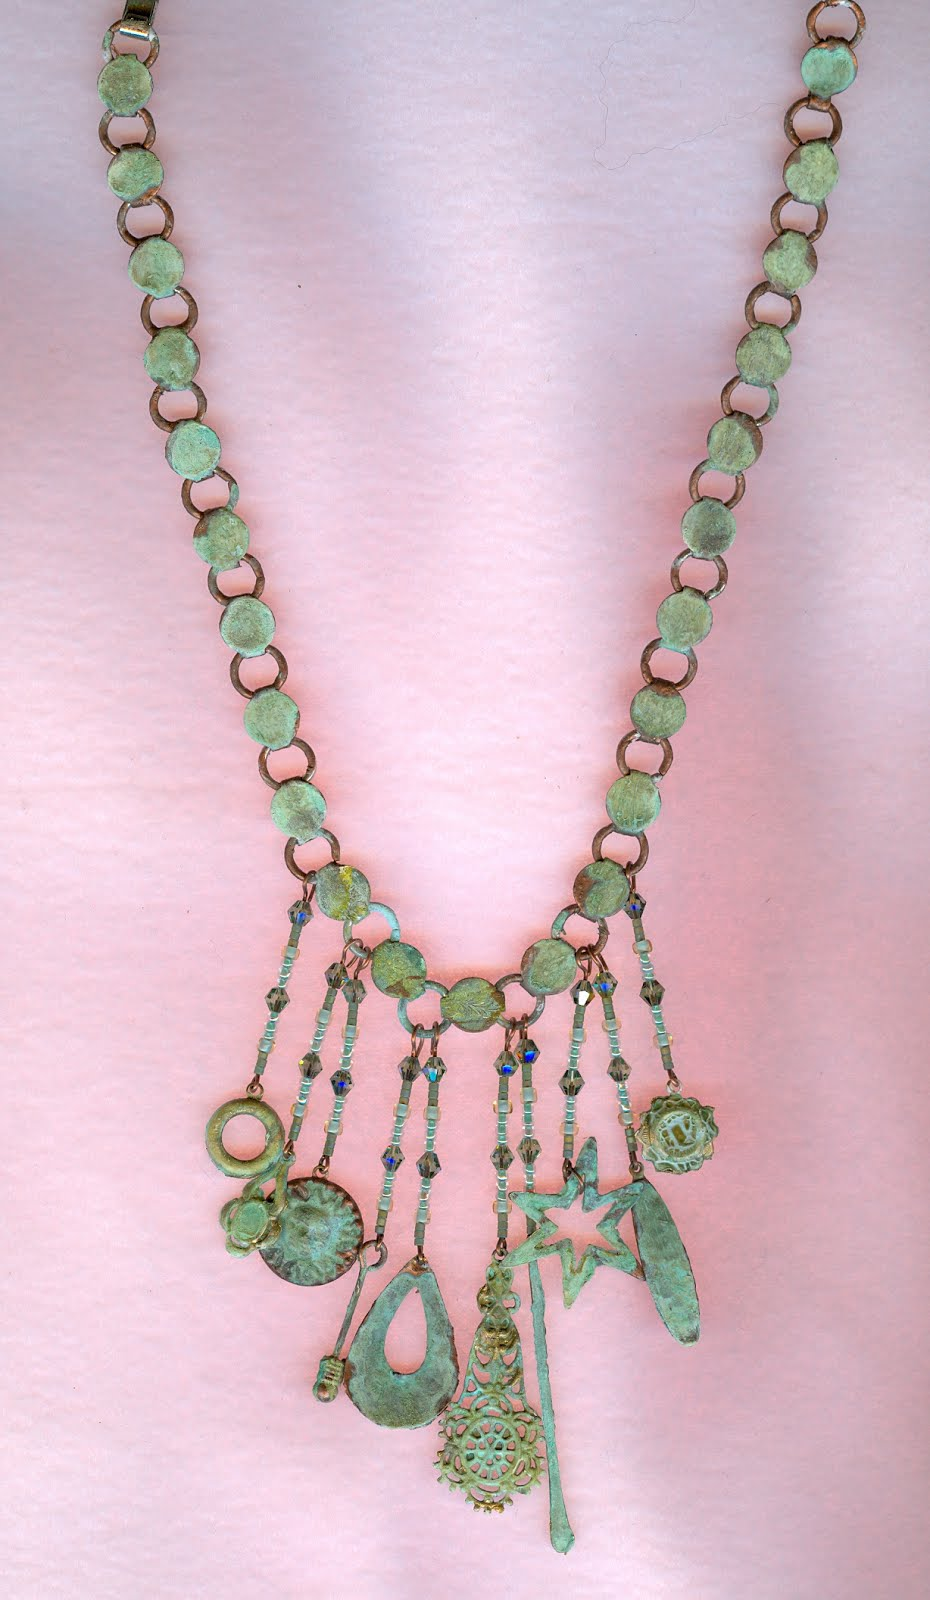 Copper patina waterfall necklace